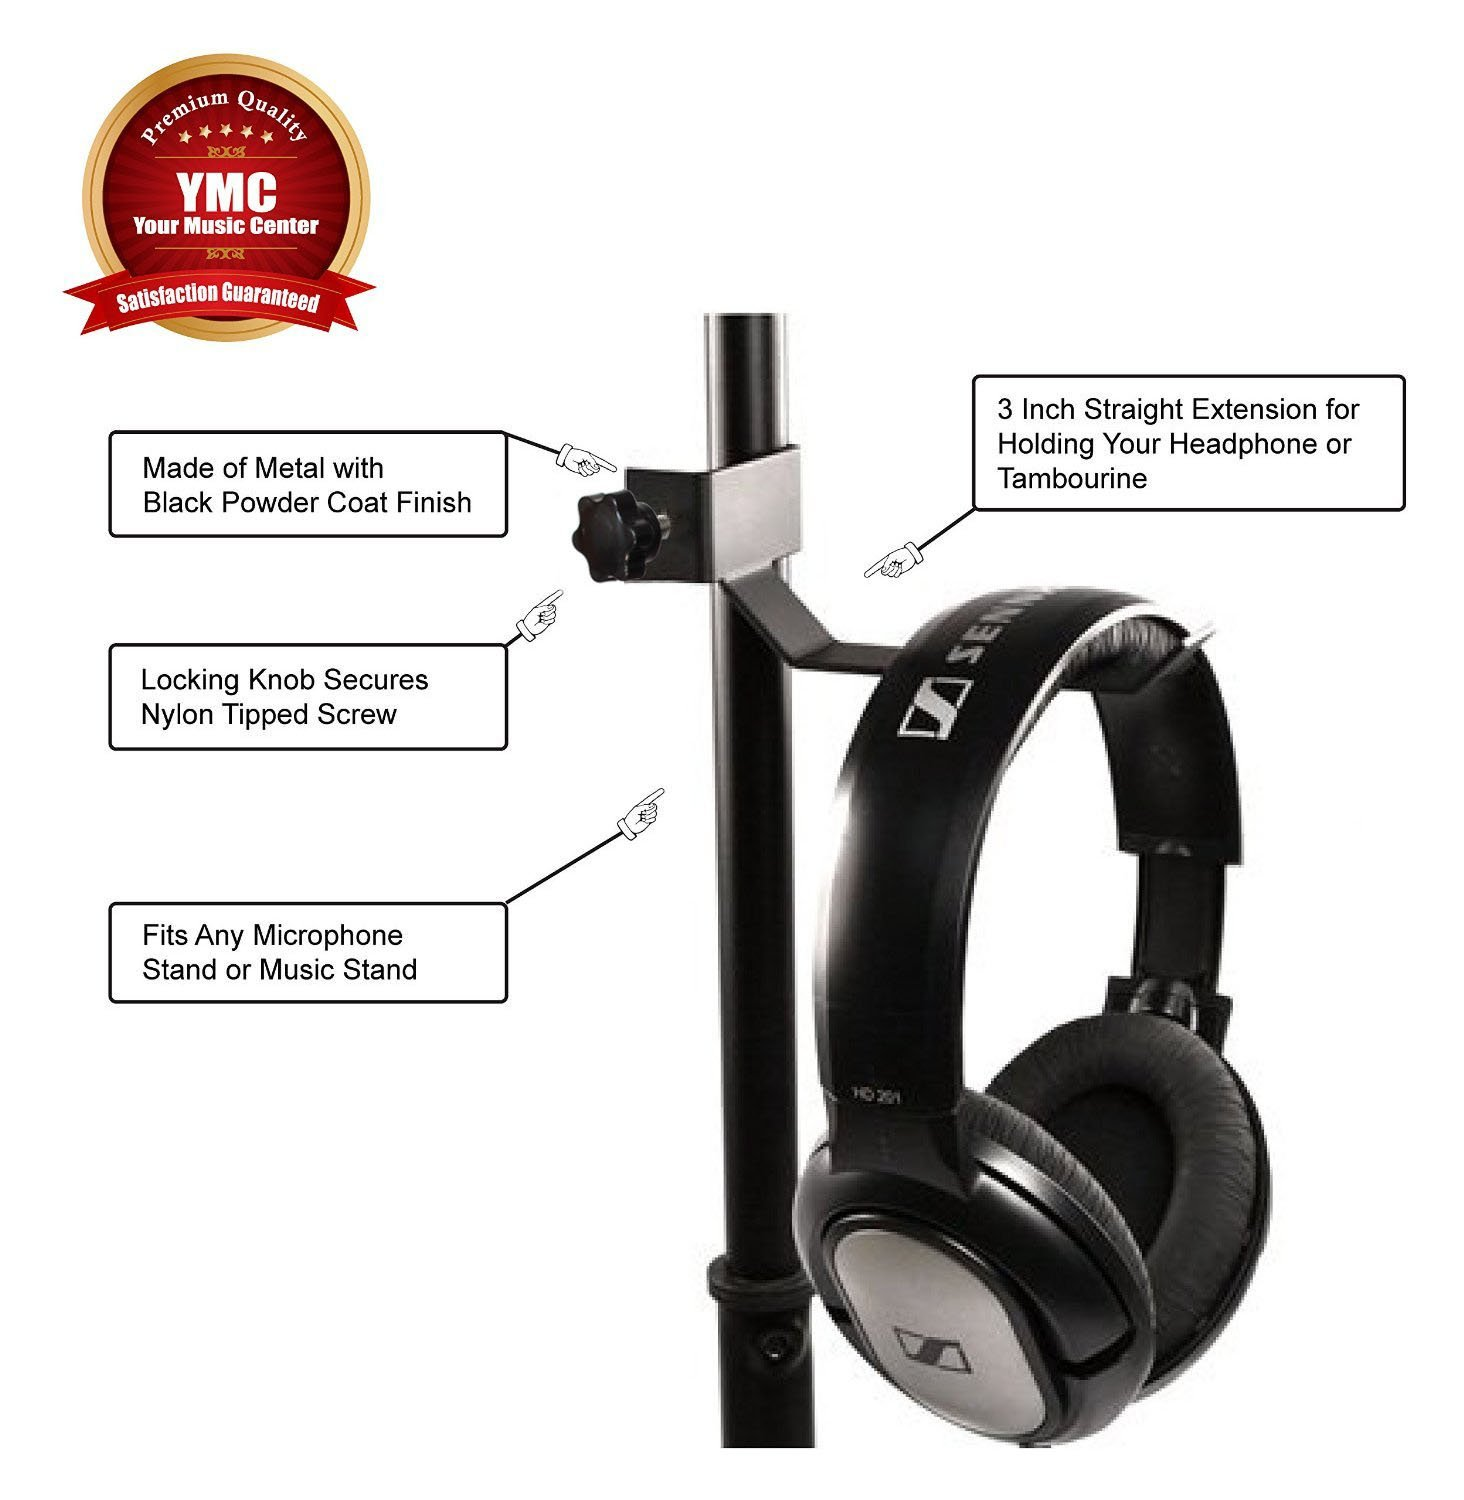 Ymc Headphone Holder Tambourine Hanger Clip For Music Microphone Musical Stand Black Instruments